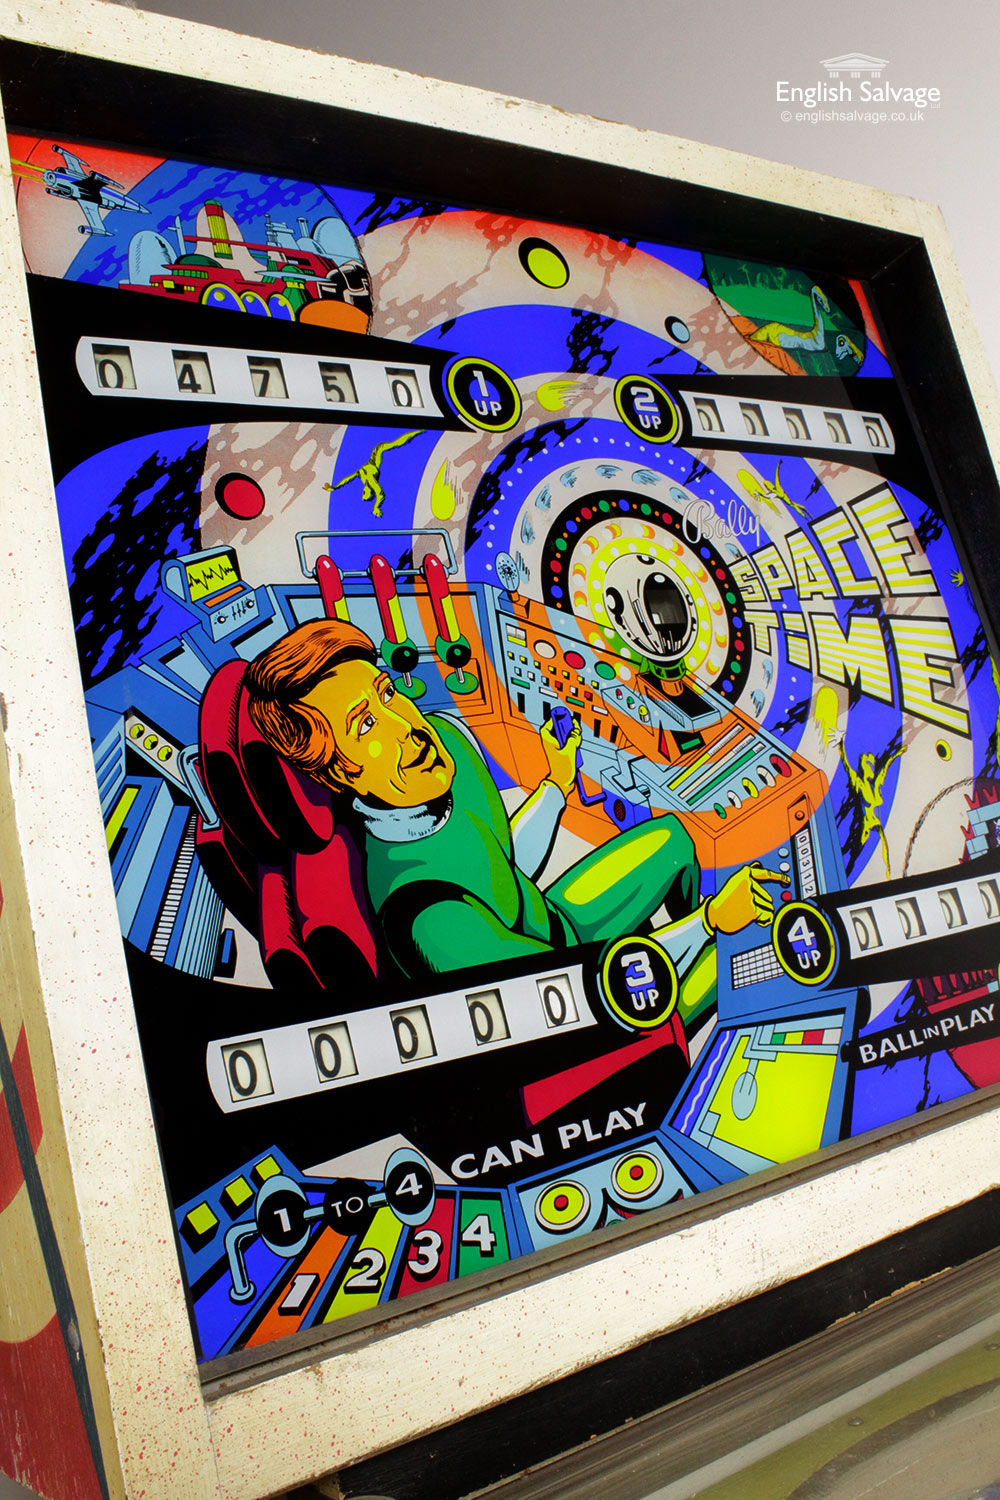 Vintage Bally Space Time Pinball Machine